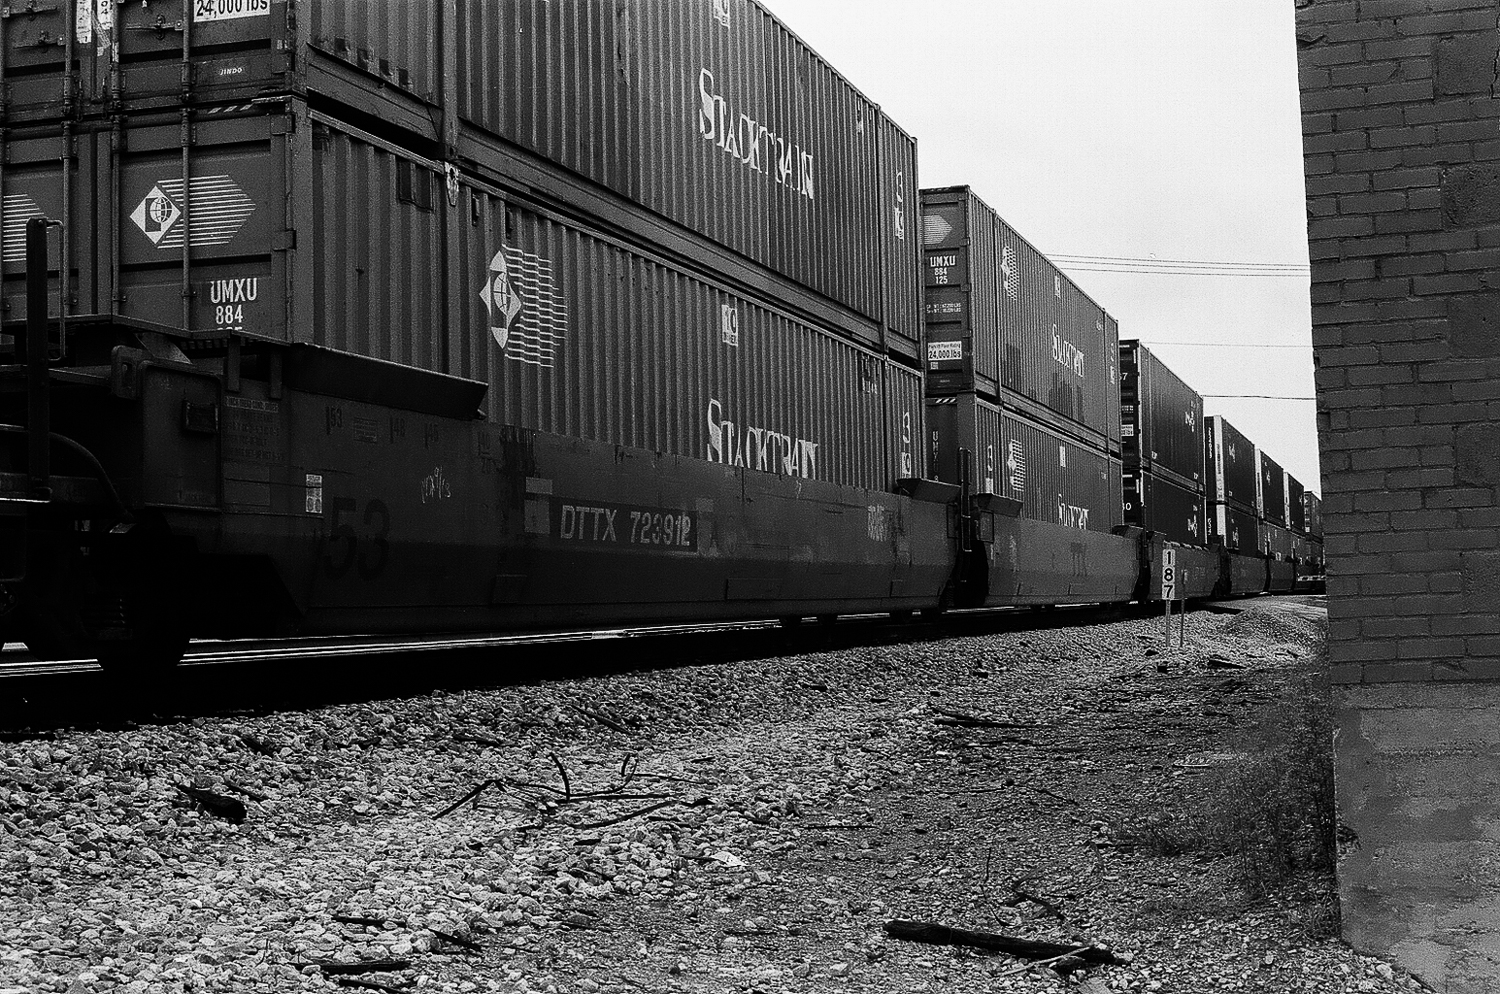 The train tracks behind the antique store (film).